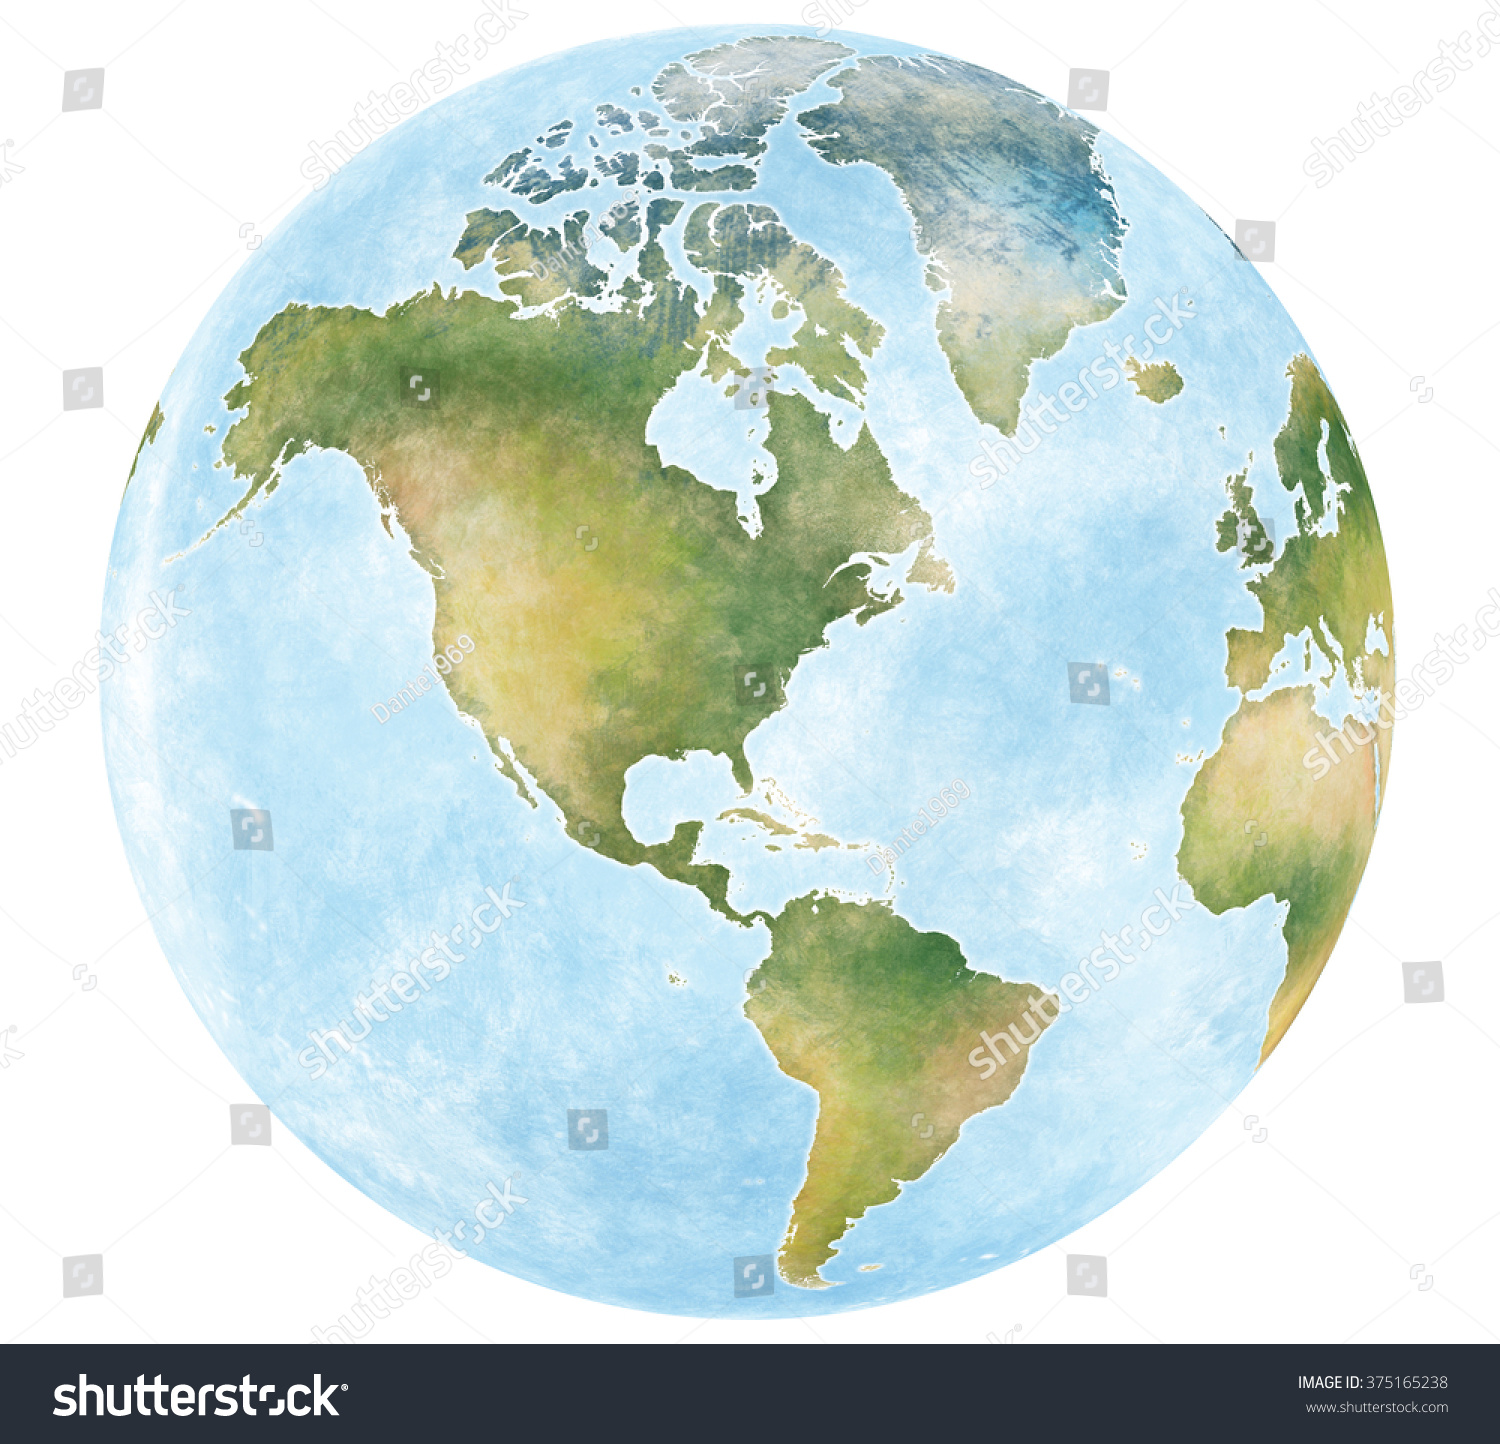 Illustration World Map Continents Planet Earth Stock